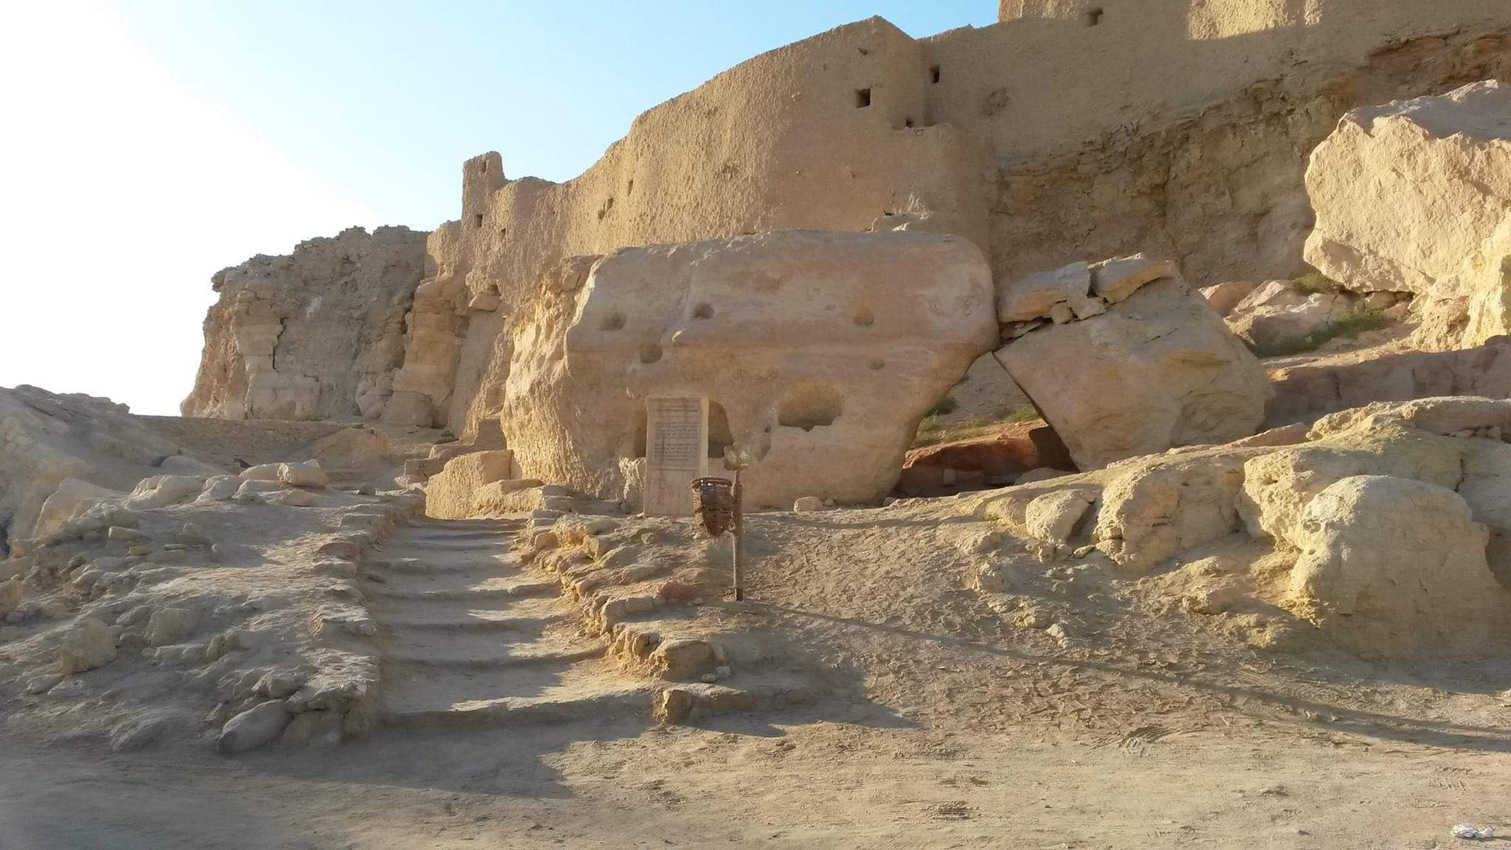 Steps leading to the Temple of the Oracle in Siwa.